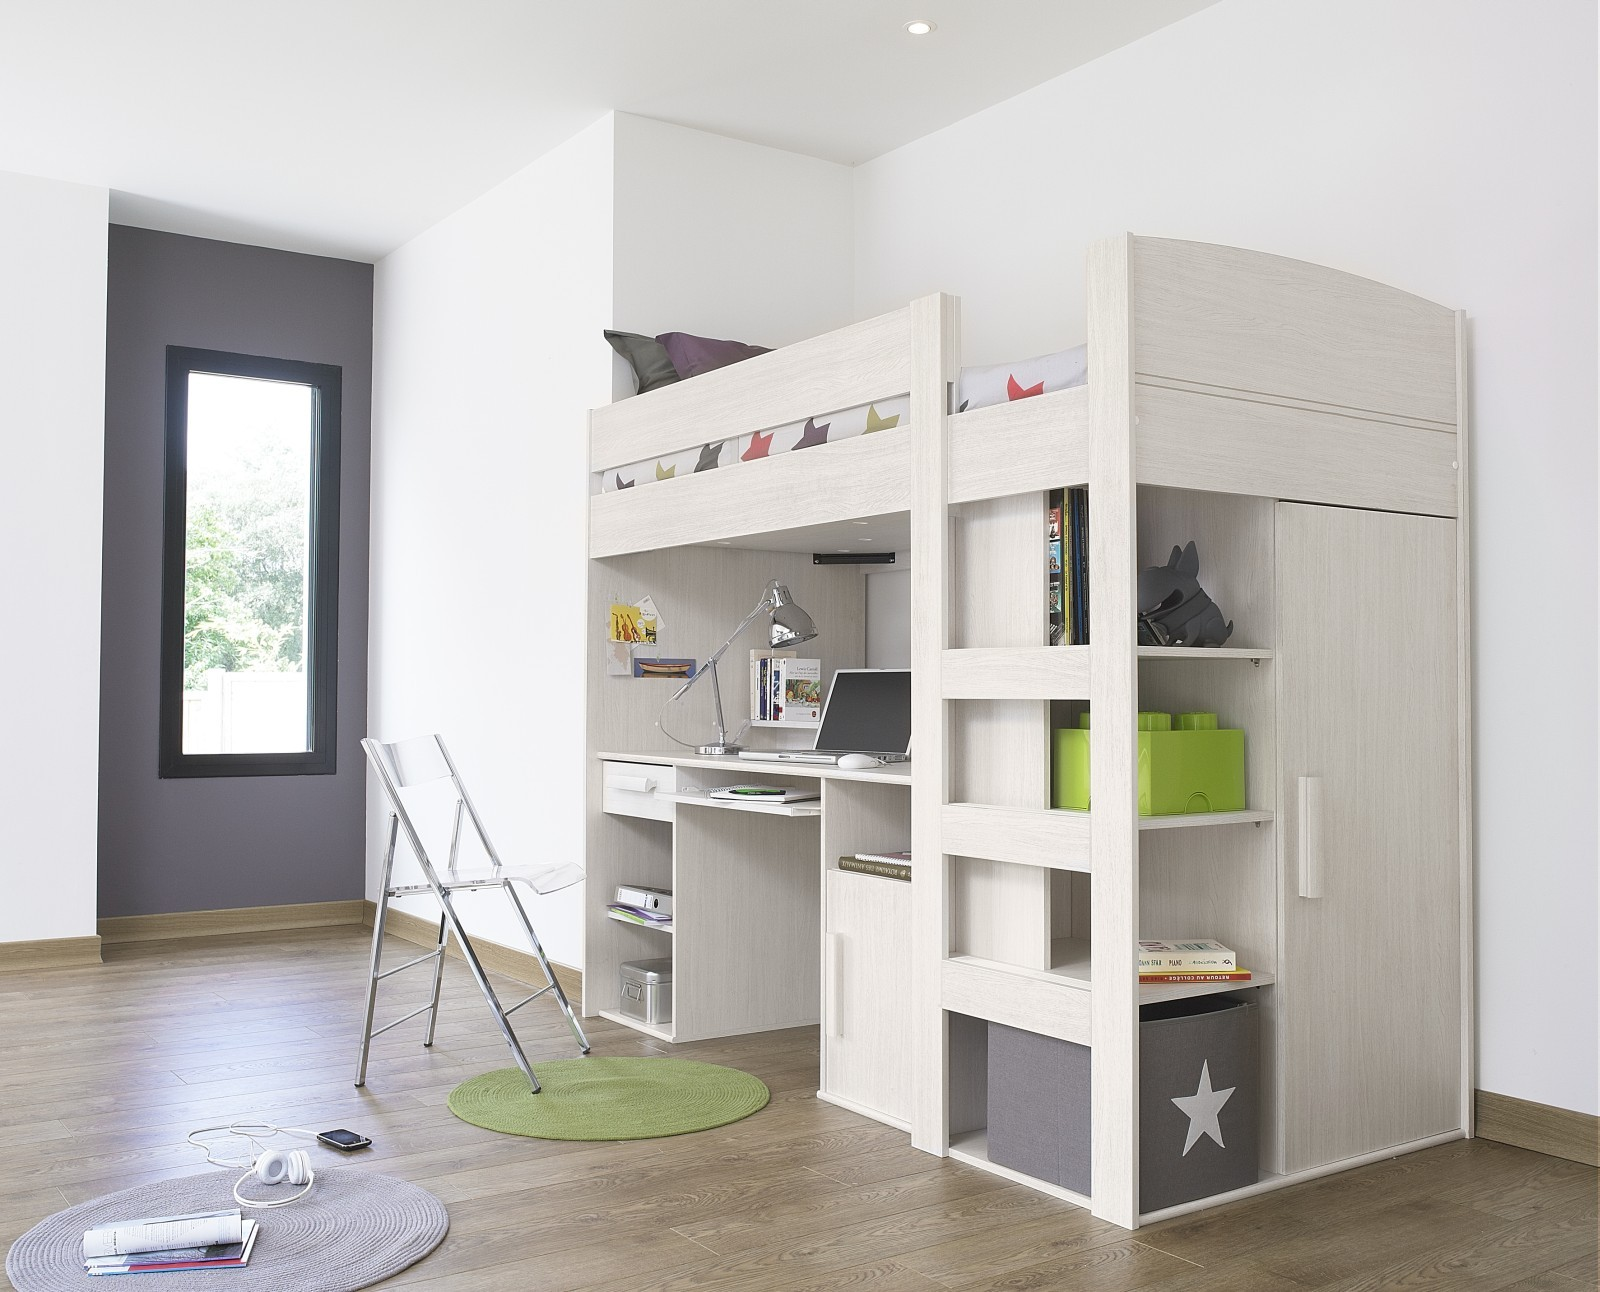 outstanding-loft-bed-for-teens-with-desk-for-study-and-syilish-table-lamp-with-sliding-keyboard-place-and-folden-chair-and-rectangular-room-for-reading-books-and-round-footwear.jpg